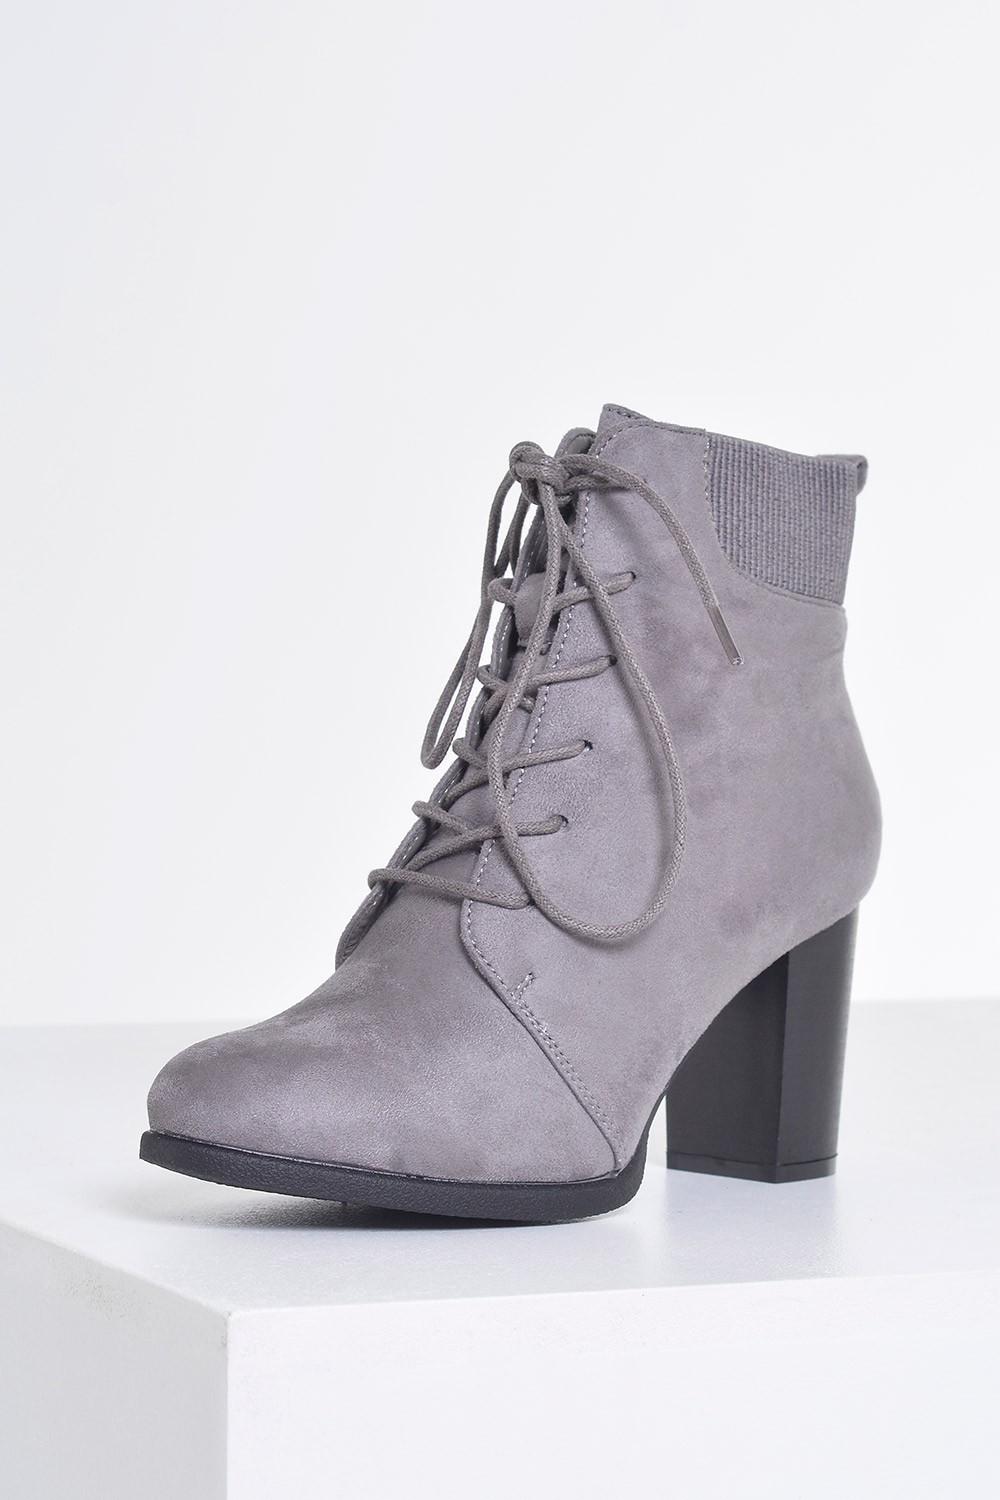 For warmer weather, heeled booties are perfect for all of those outdoor parties, hot dates and nights out dancing with your girls. You and your friends will be serious #SquadGoals when you show up rocking some lace-up suede booties with sky-high stilettos, but you'll look just as cute on more casual nights out when you wear a pair of skinny jeans with some clear lucite booties or booties with.